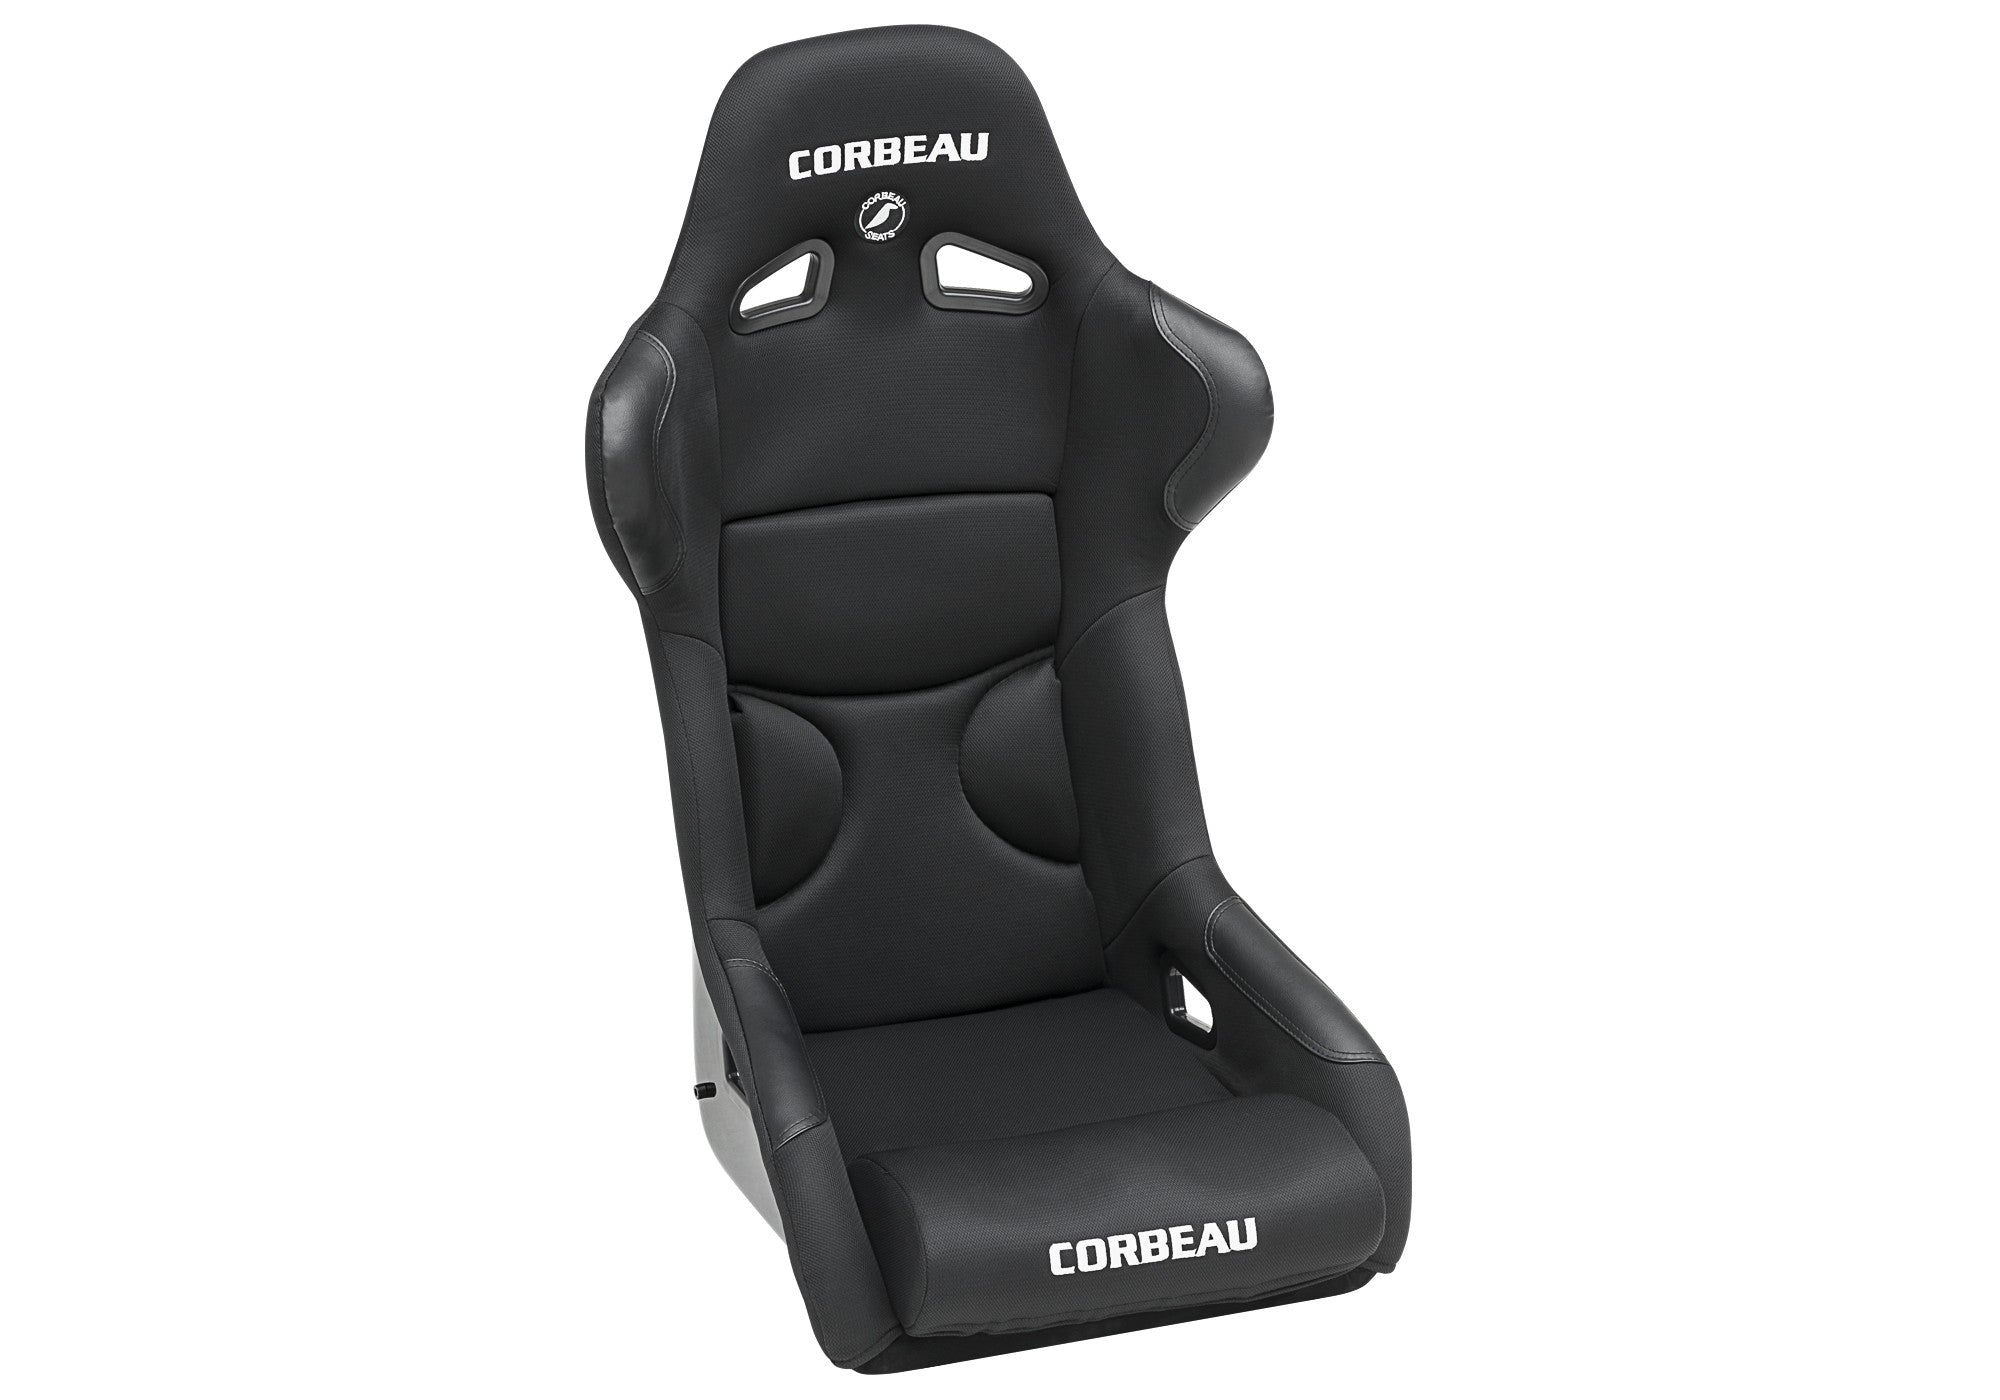 Corbeau FX1 Pro Racing Seat (This Seat is Priced Per Seat)